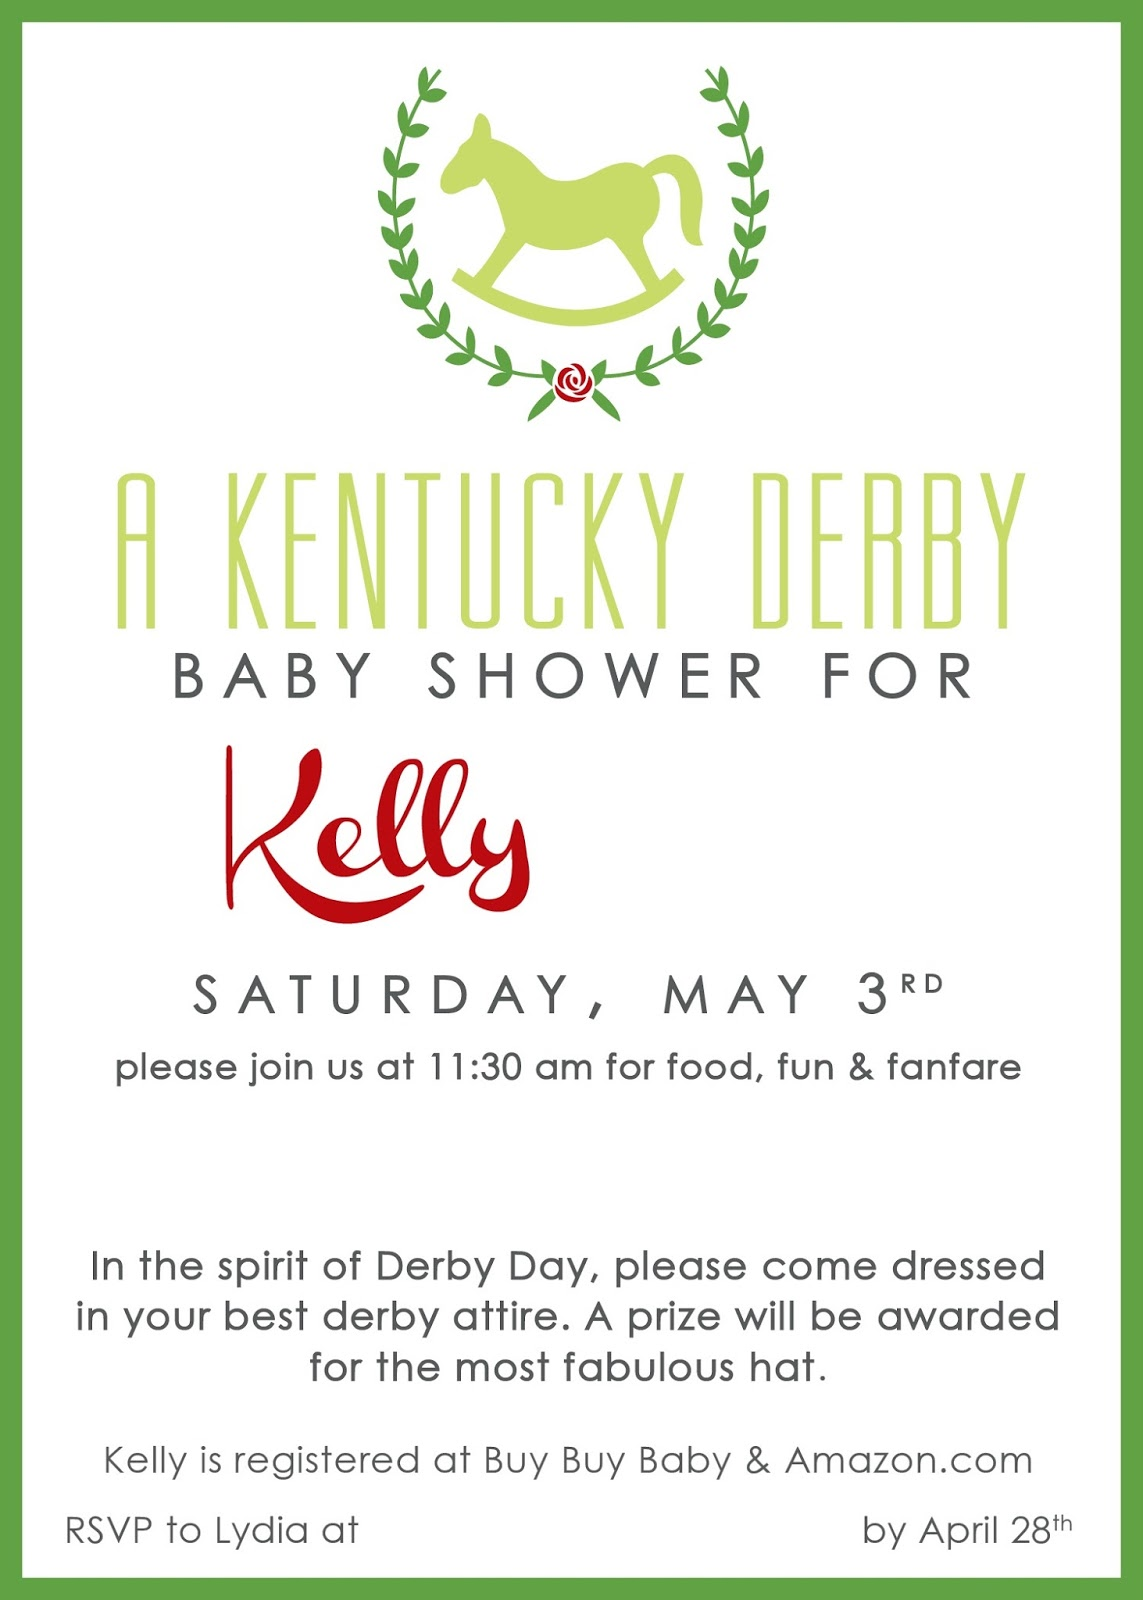 Huckleberry Love: Kentucky Derby Baby Shower